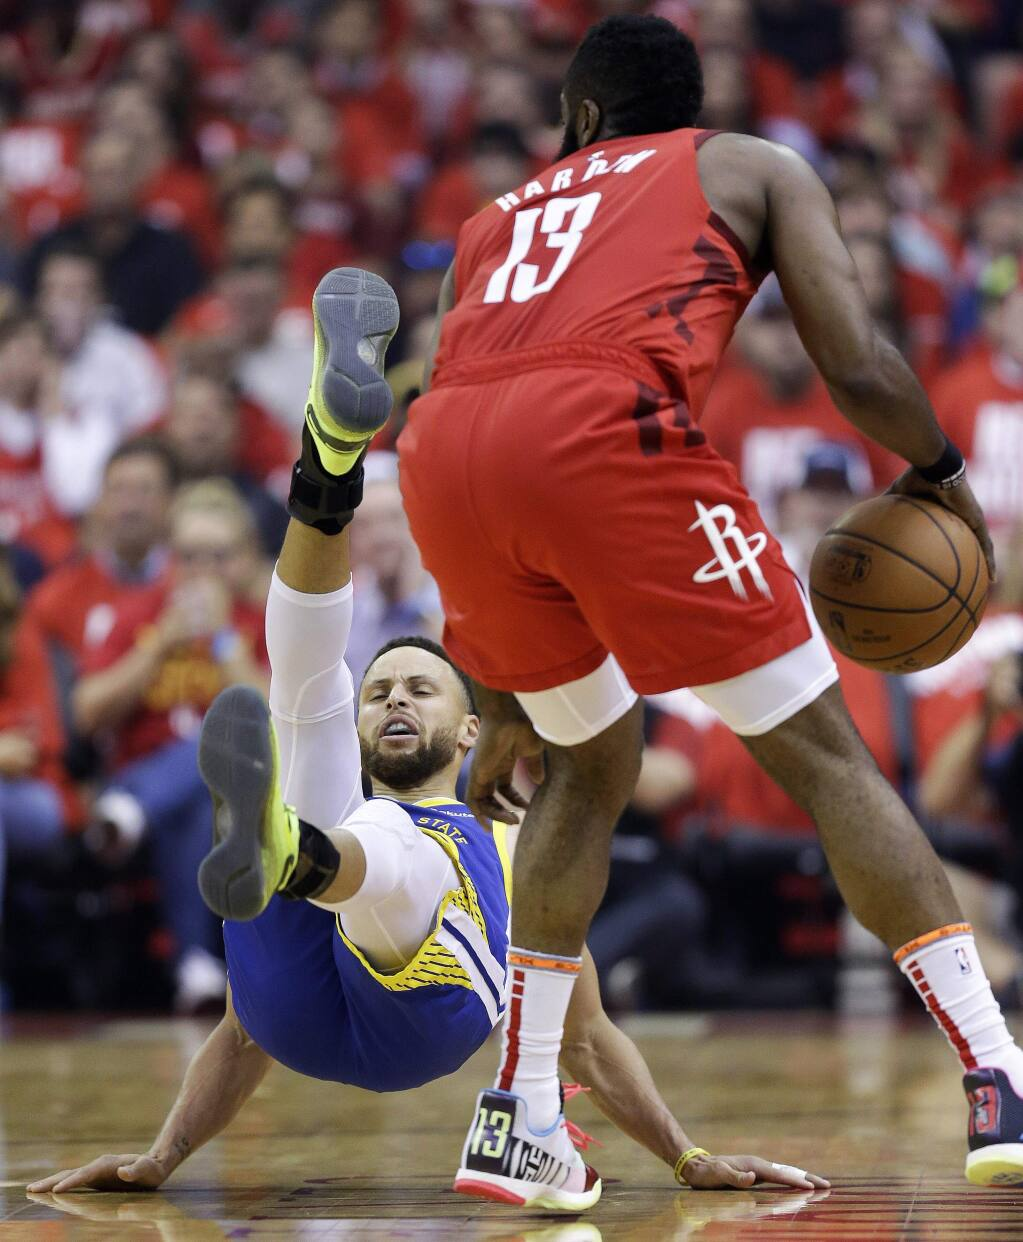 Golden State Warriors guard Stephen Curry, left, falls down after being bumped by Houston Rockets guard James Harden during the first half of Game 4 of a second-round NBA basketball playoff series, Monday, May 6, 2019, in Houston. (AP Photo/Eric Christian Smith)